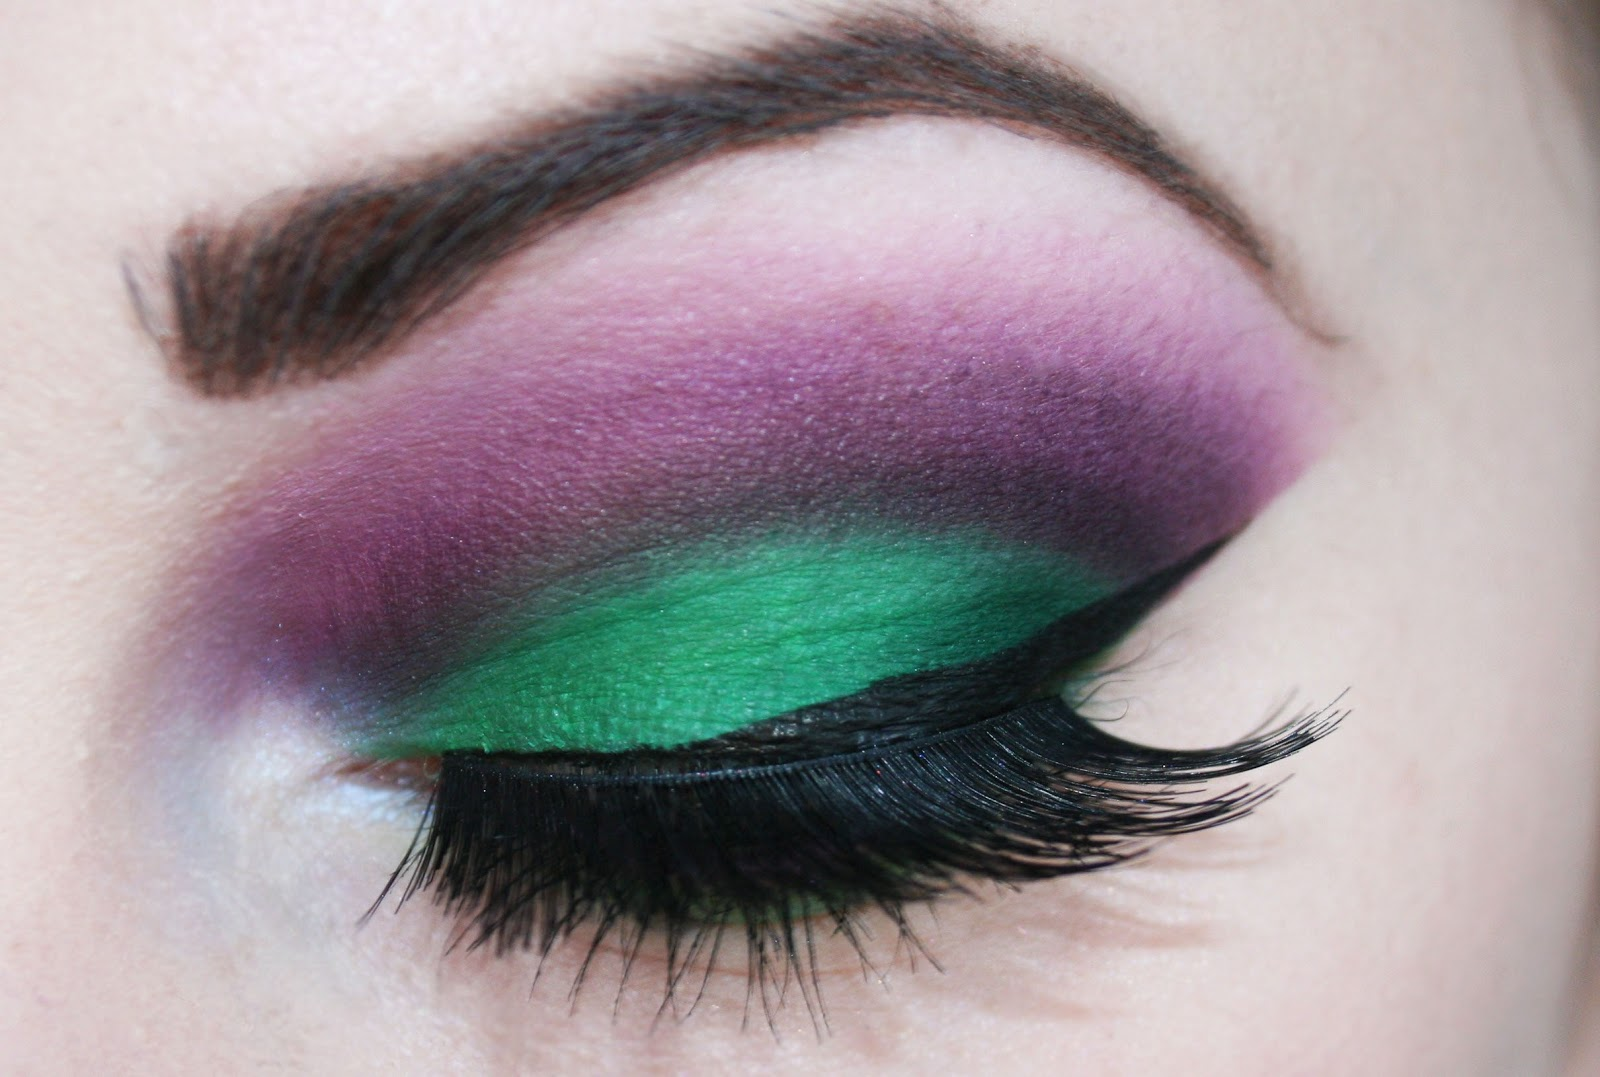 10 Amazing Eye Makeup Pictures To Inspire You